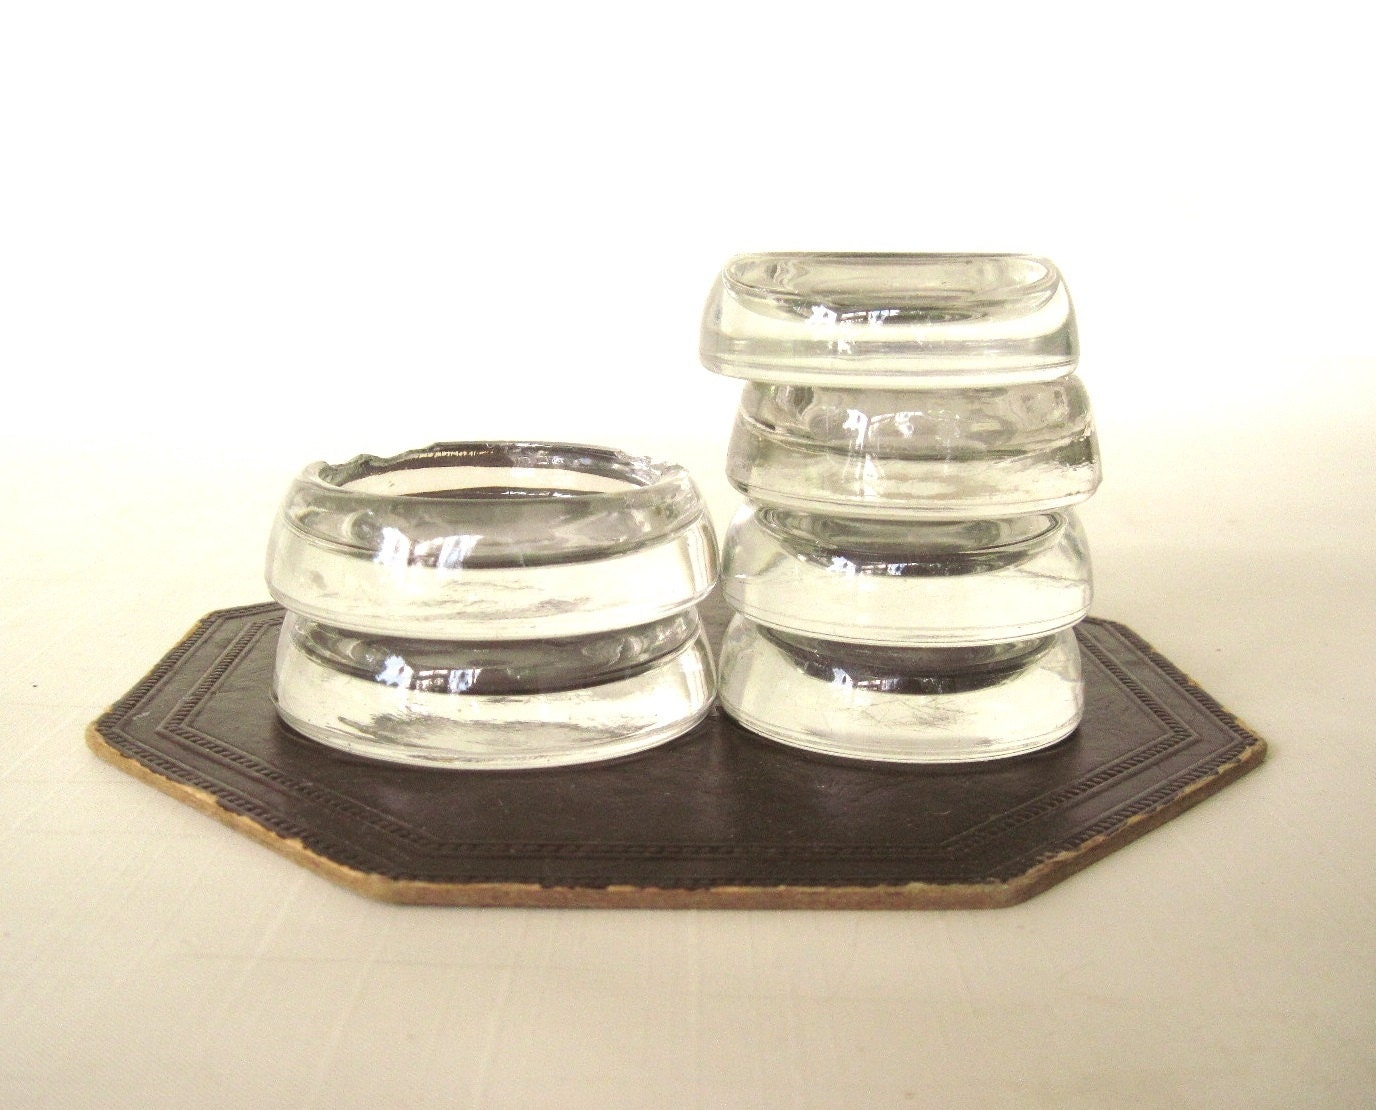 Glass Furniture Leg Coasters Carpet Rug Protectors Anchor